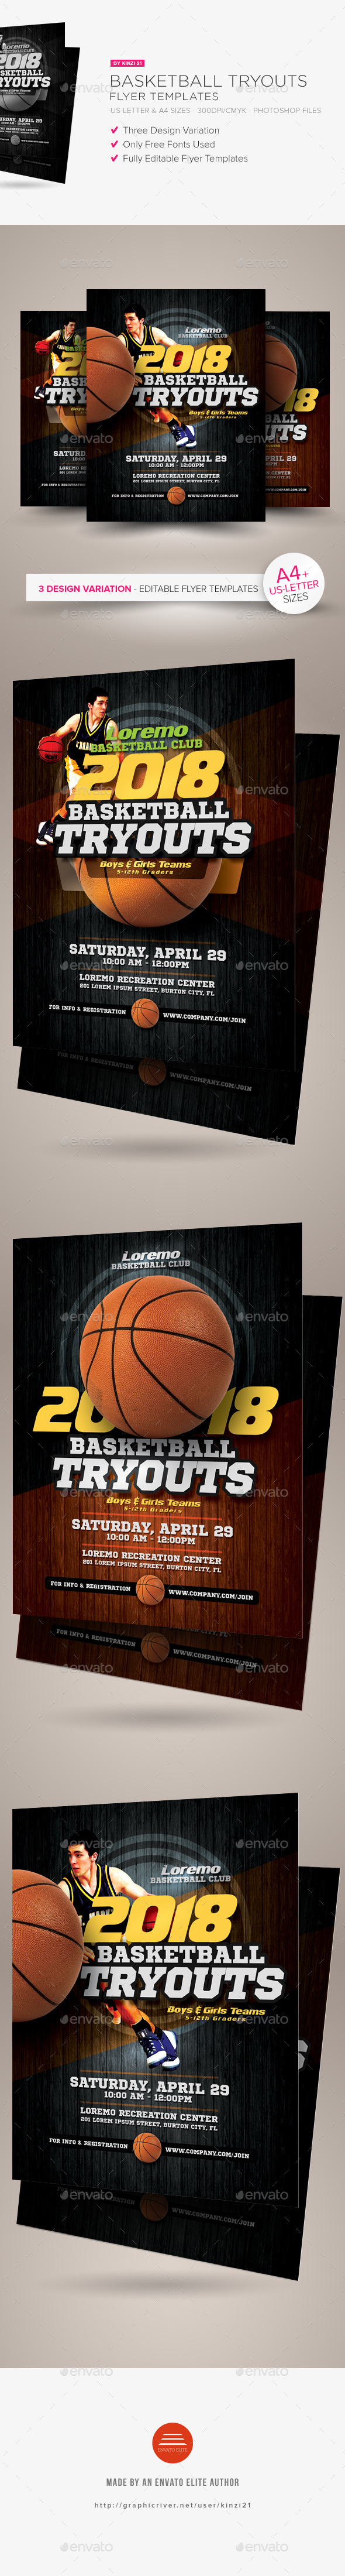 Basketball Tryouts Flyer Templates - Sports Events